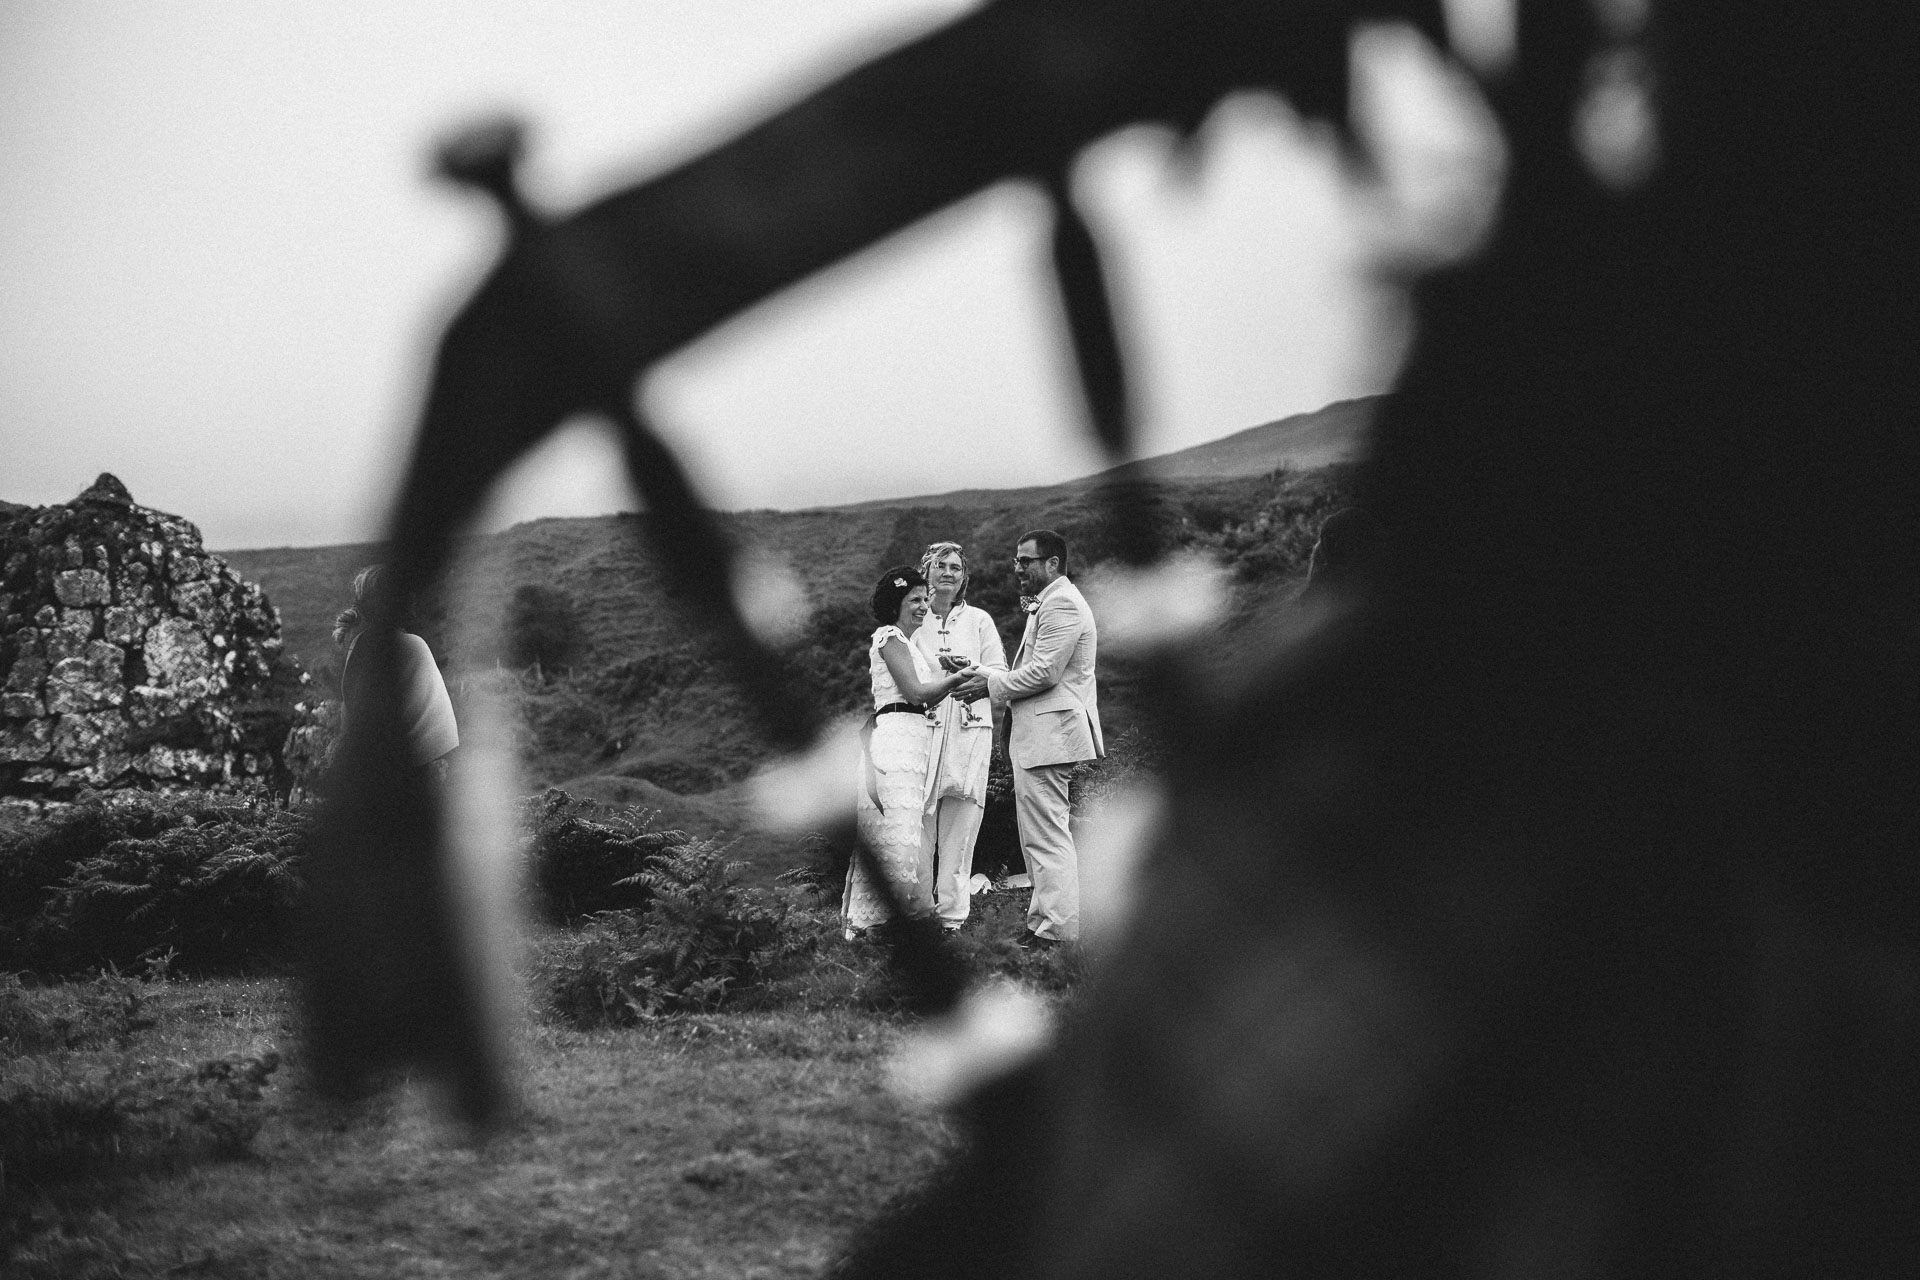 Megan_Matt_Elopement_IntimateWedding_Scotland_IsleOfSkye_JeanLaurentGaudy_089